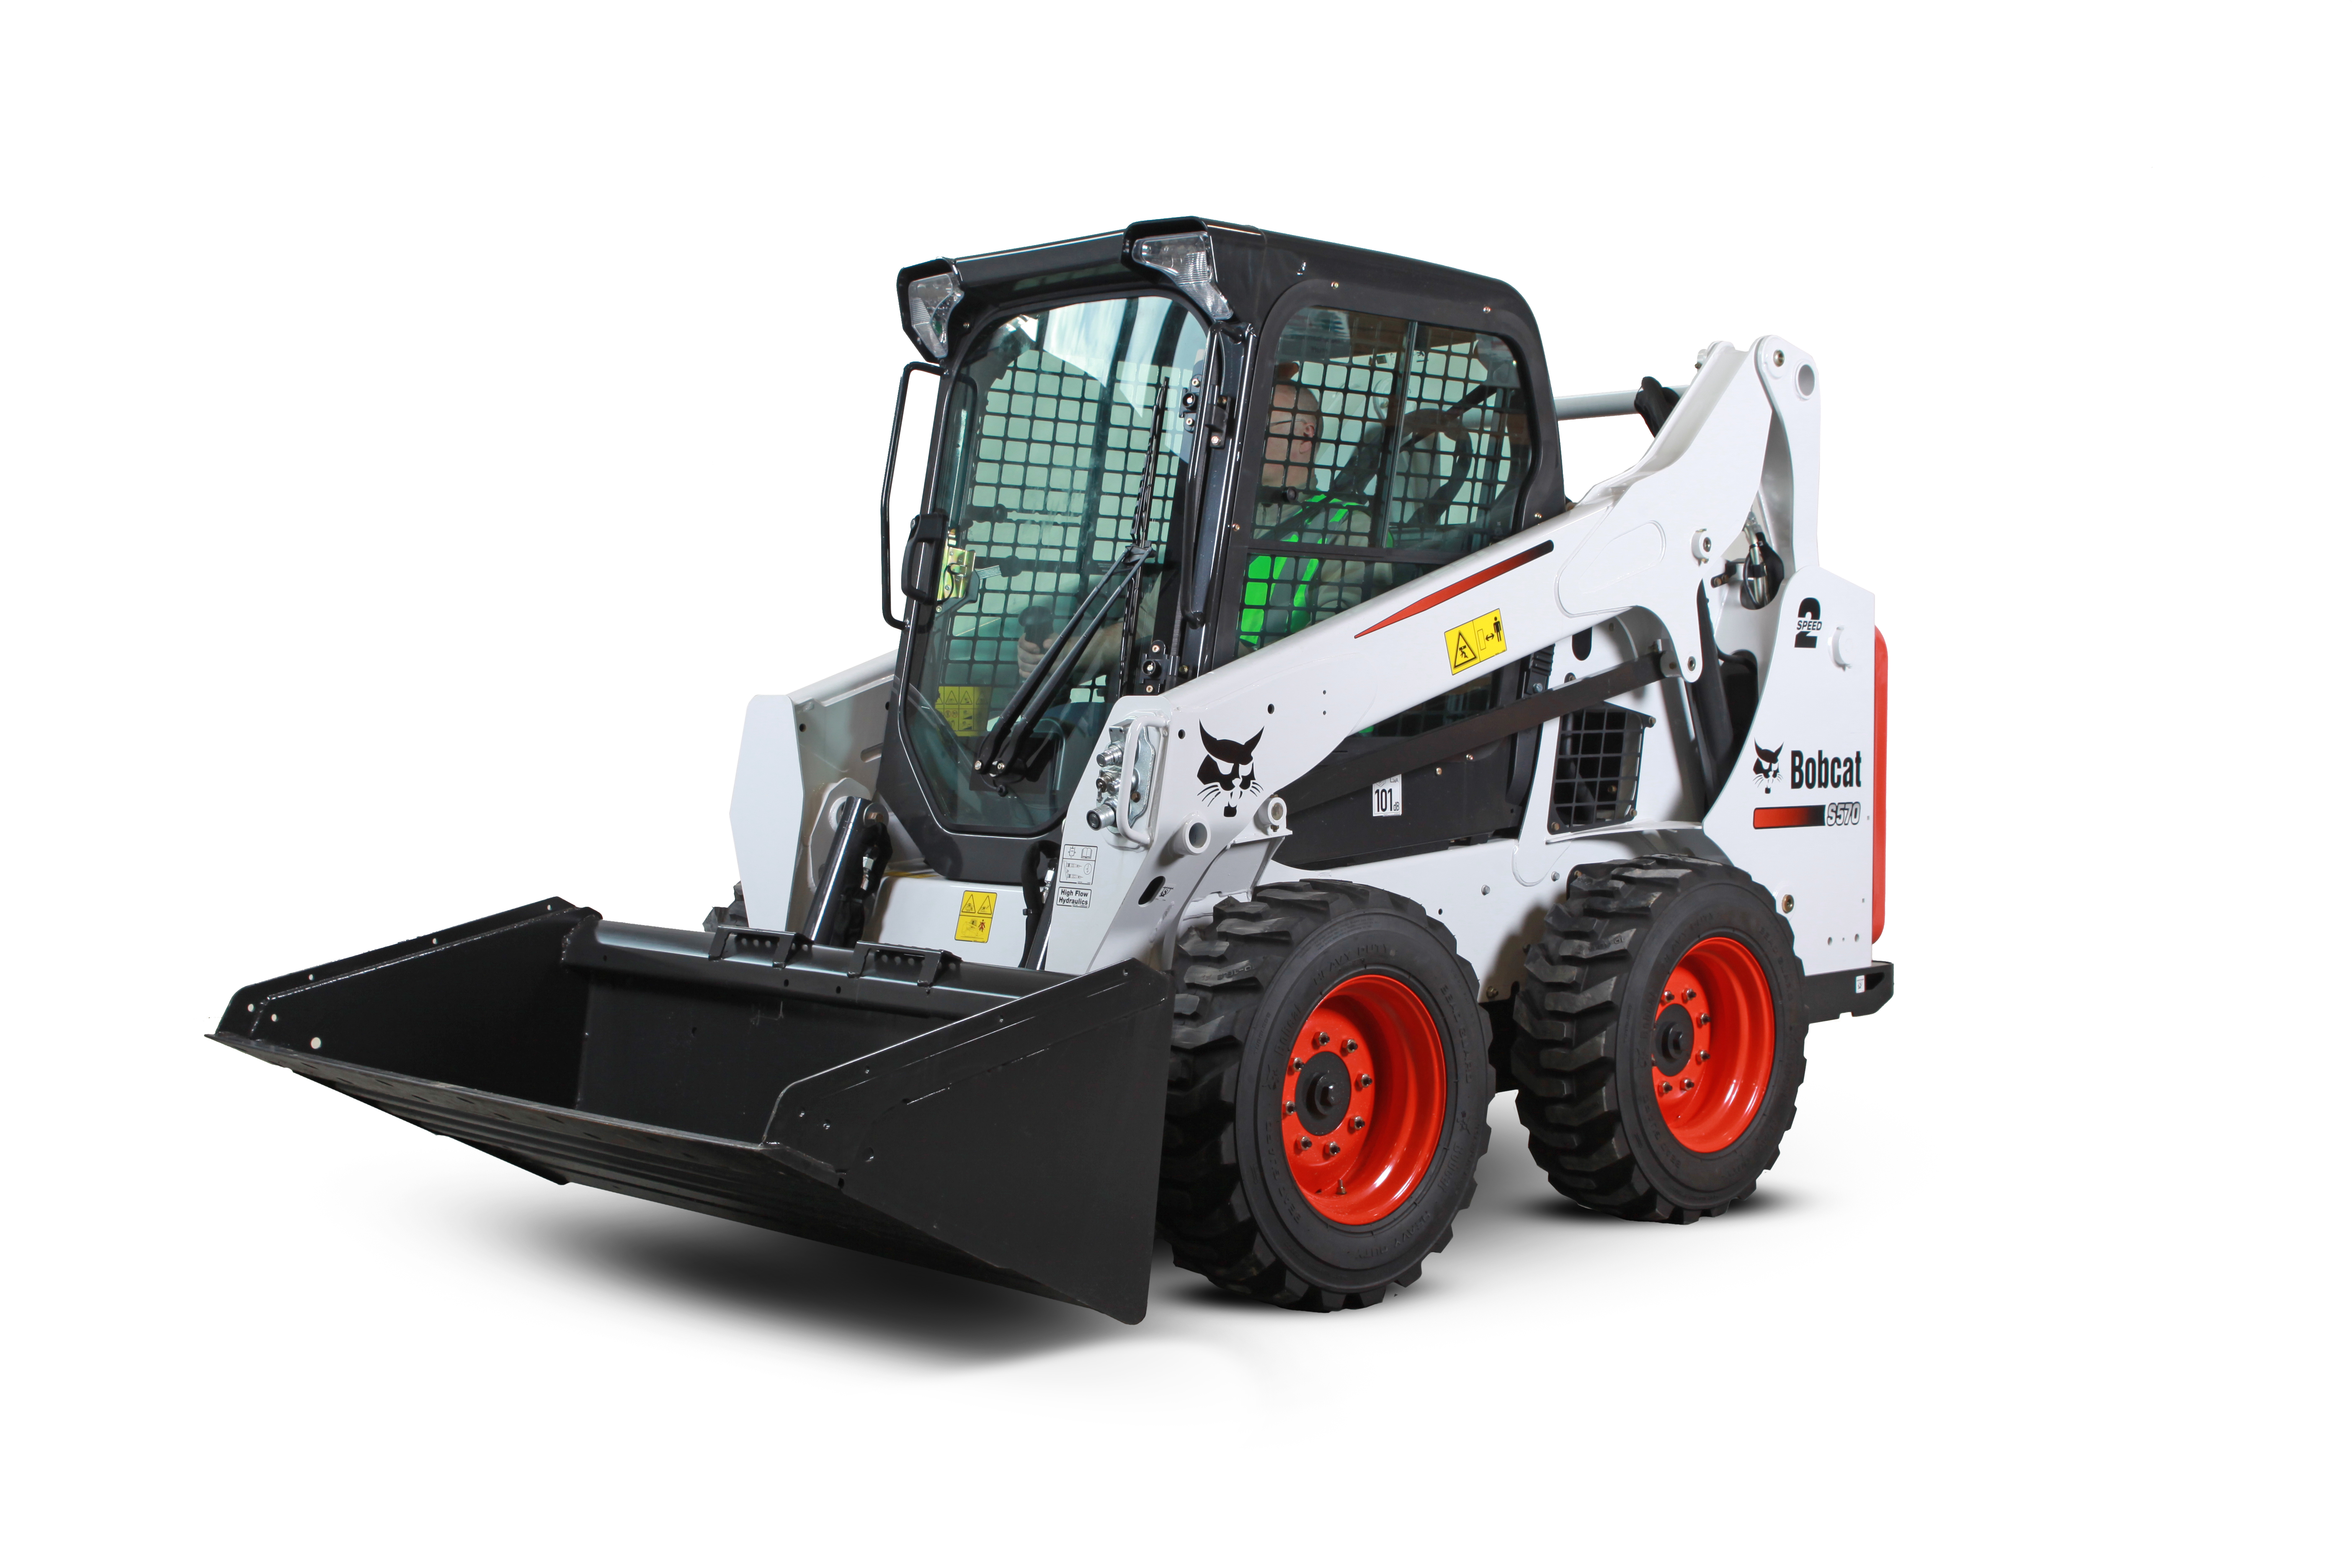 Bobcat S570 Skid Steer Loader Bobcat S570 For Sale Bobcat Sa